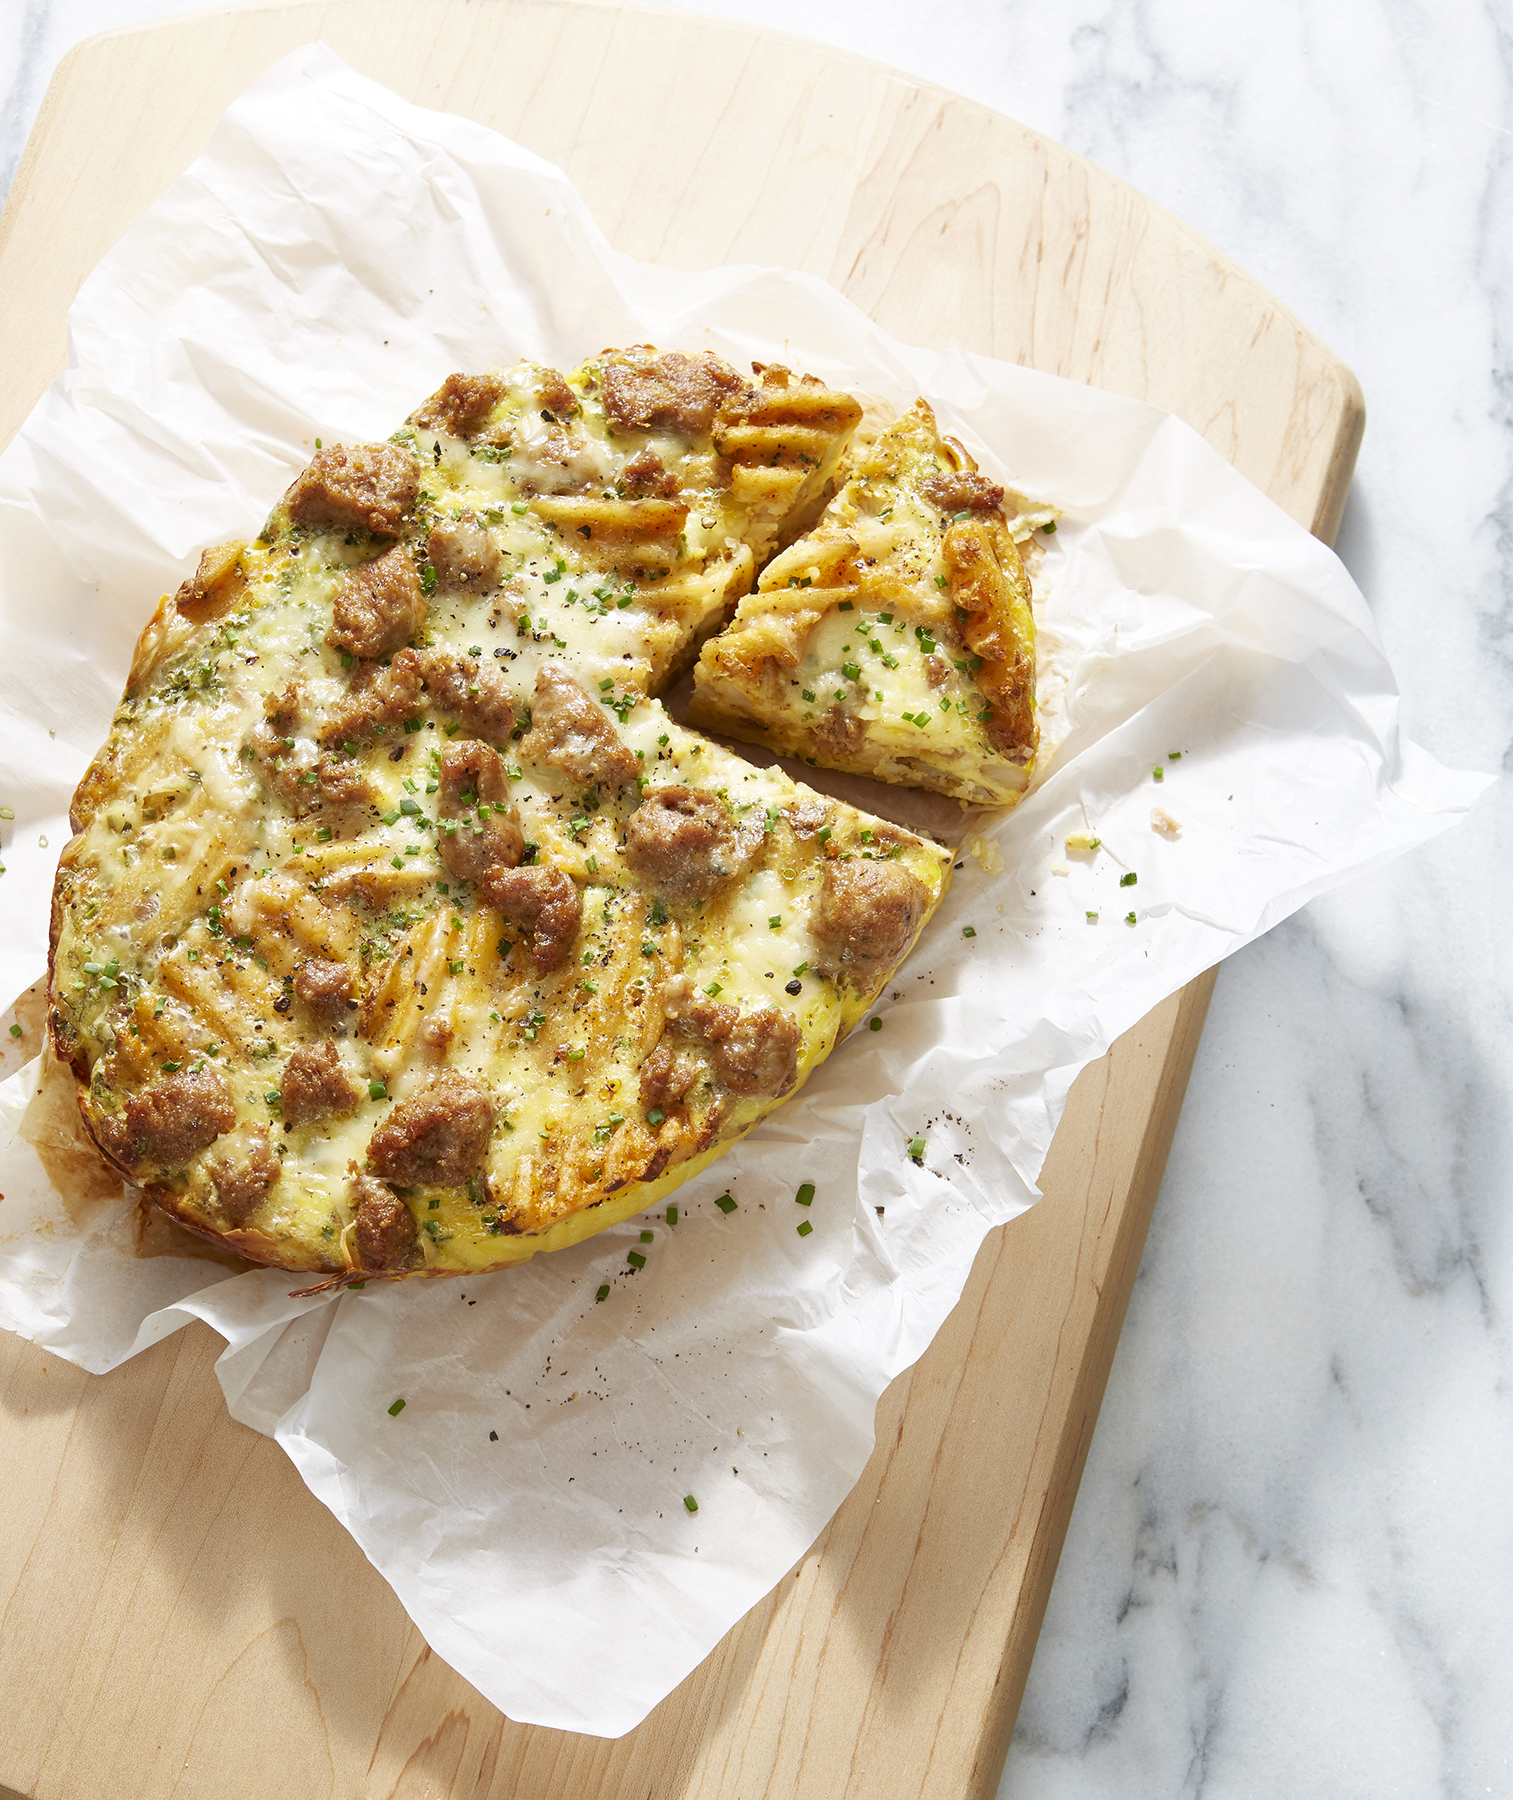 Sausage, Egg, and Cheese Hashbrown Frittata